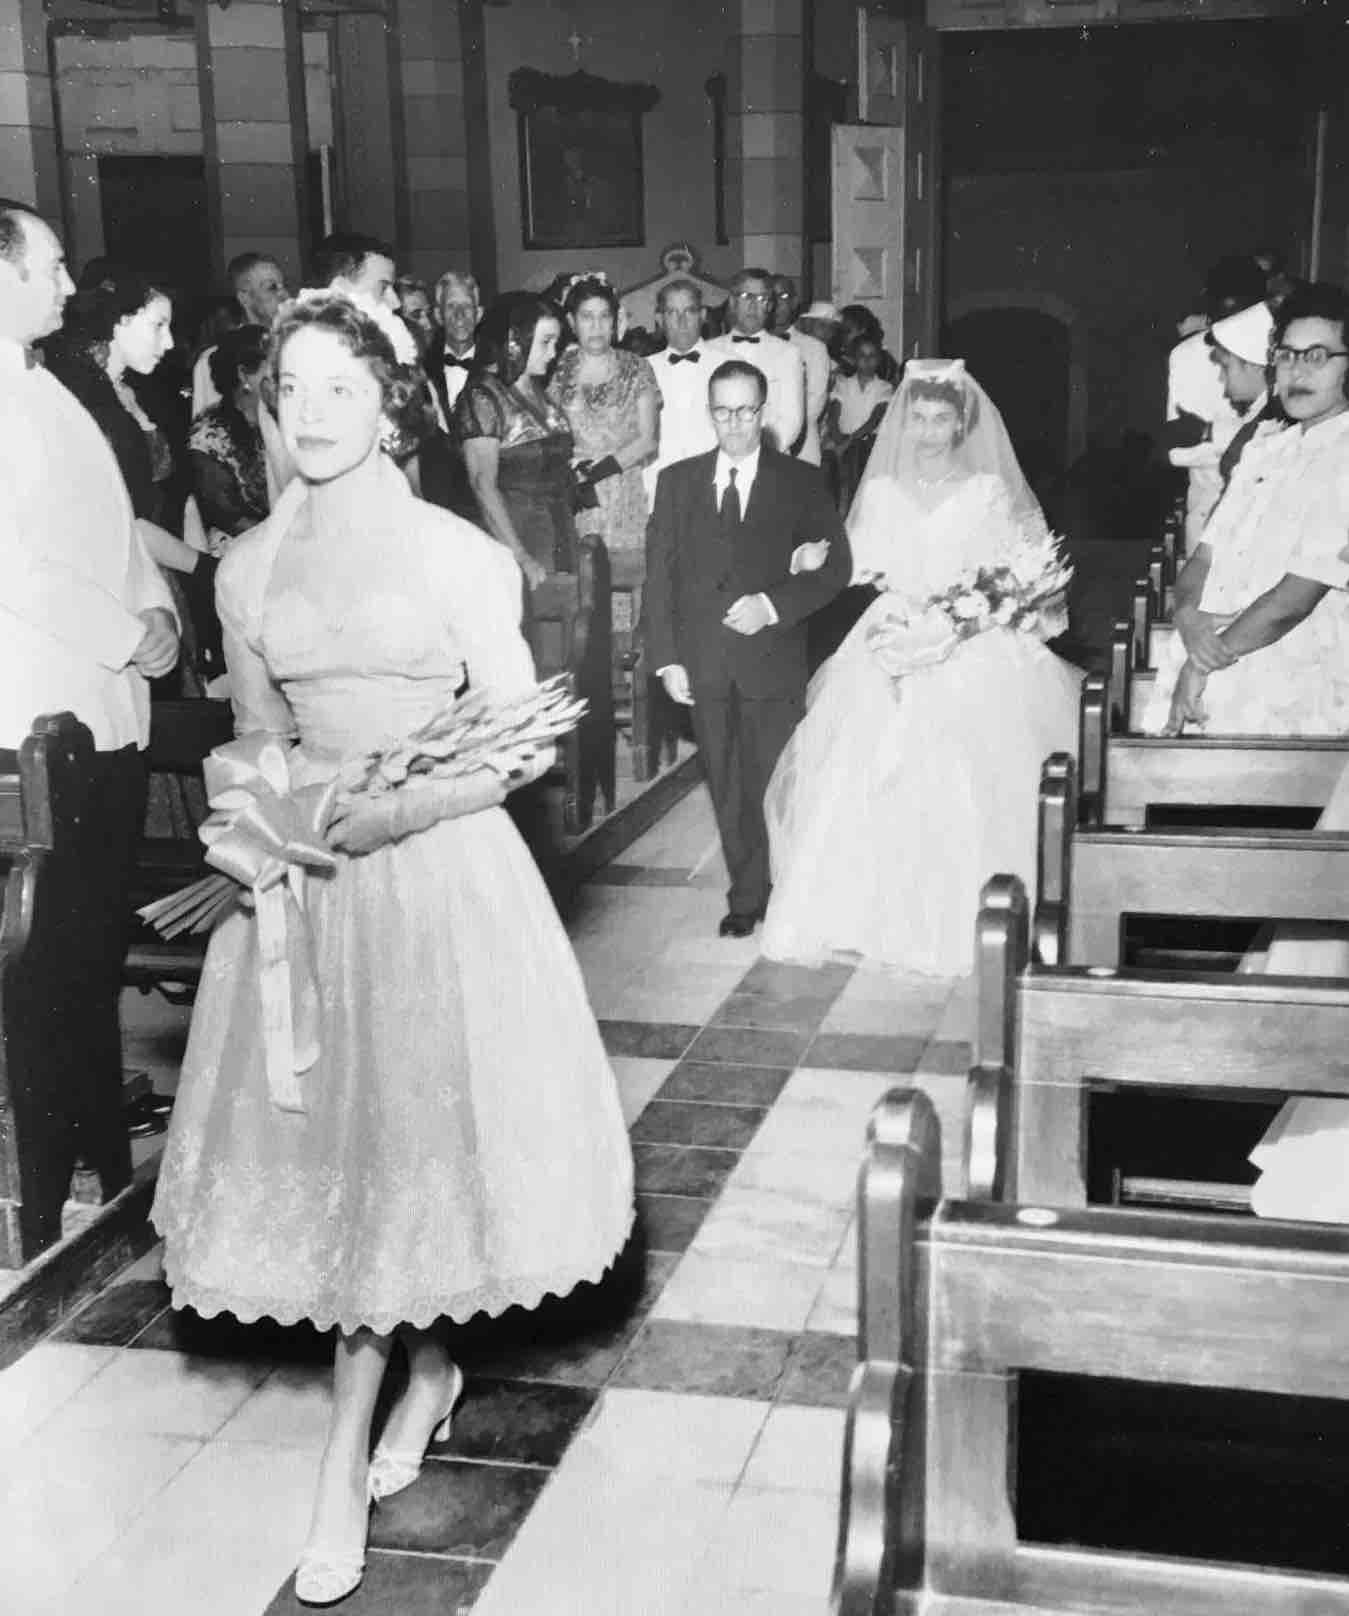 Virgin Islands wedding of Leah Sasso and William Stevens in St Thomas 1955 at the altar, sts peter and Paul catholic church, Leah McAllister